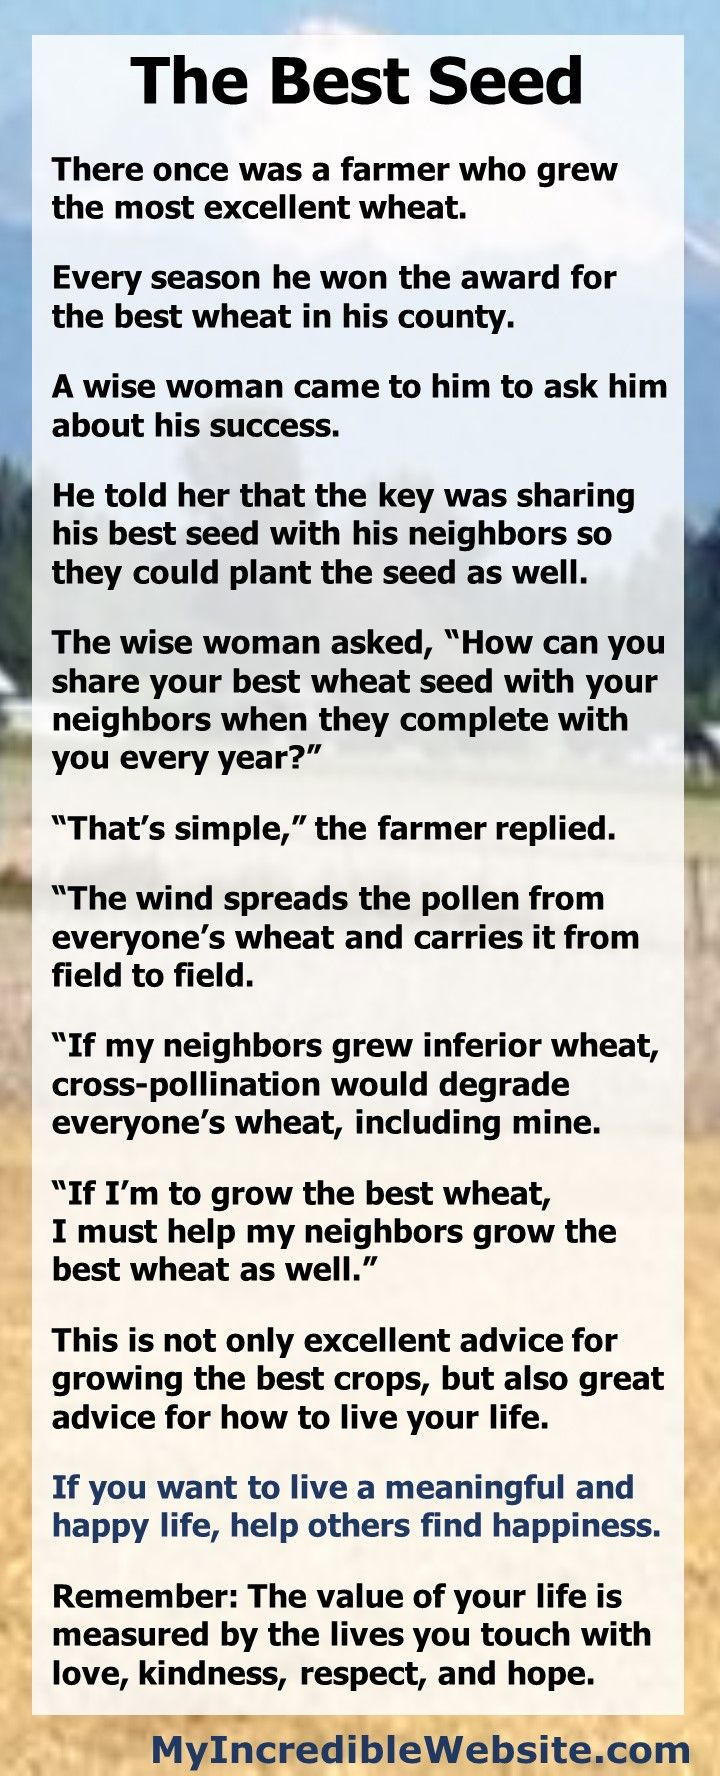 The Best Seed: A Short Story about Sharing | Inspirational ...